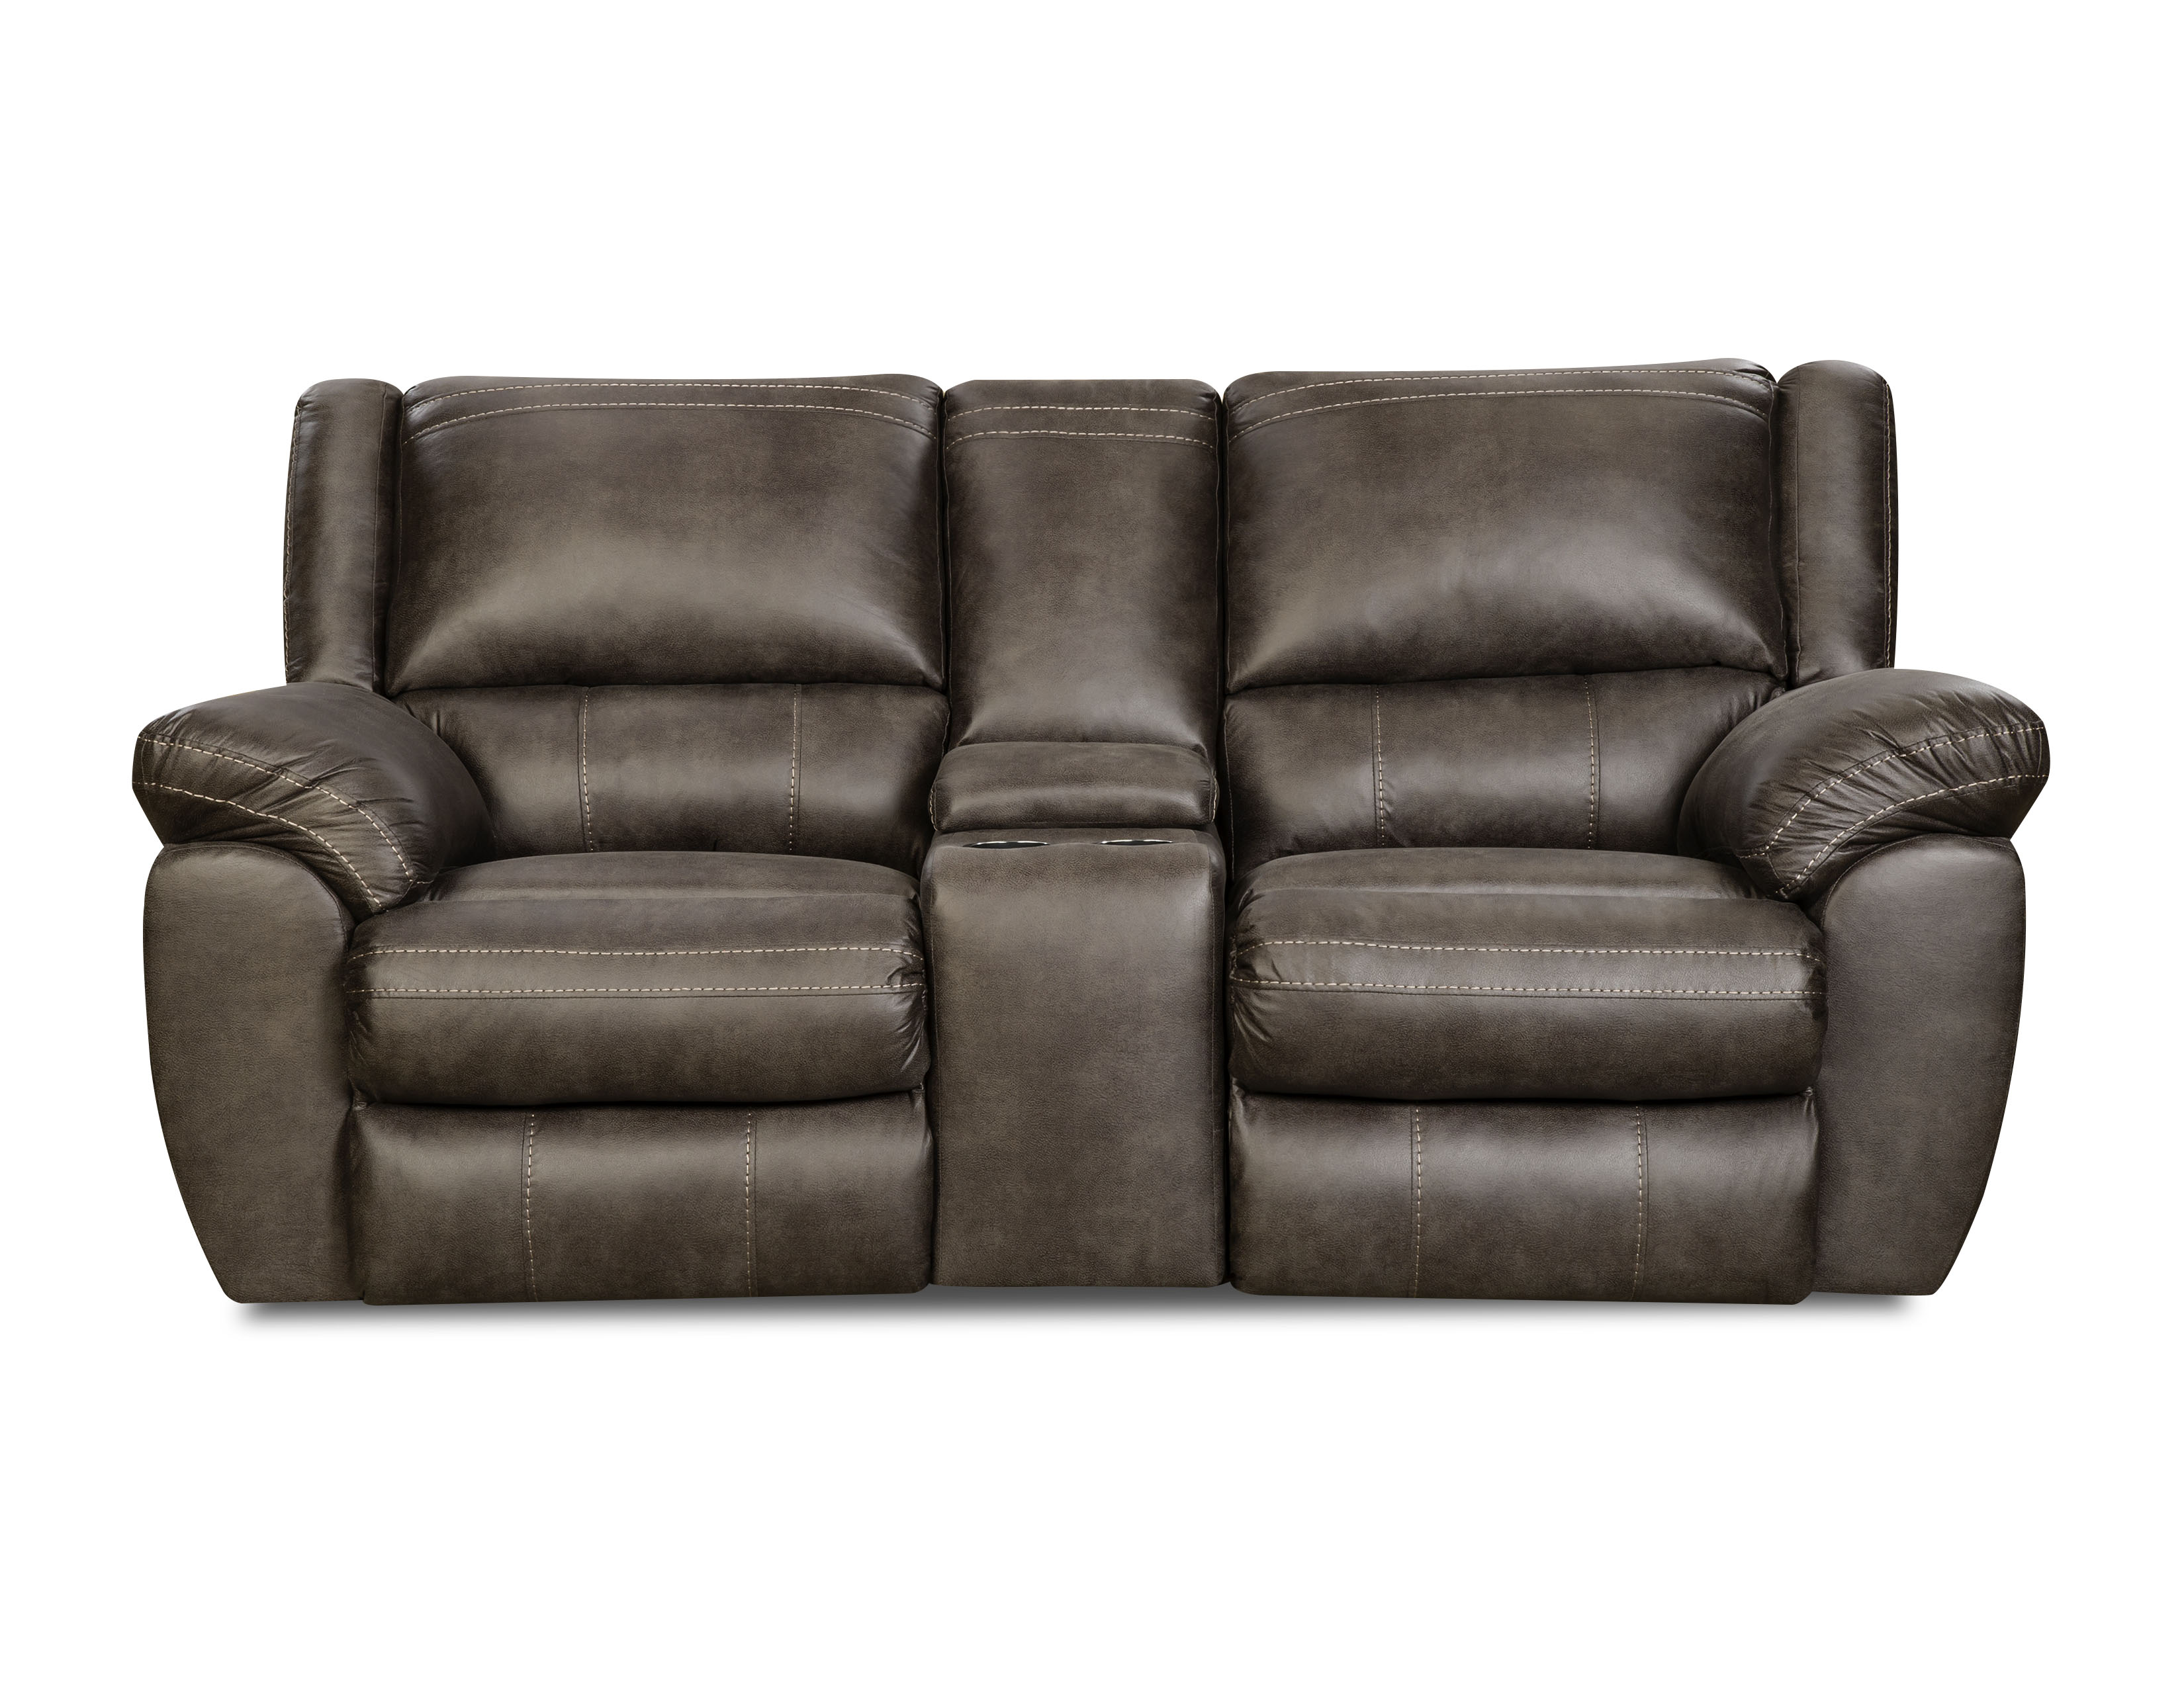 small sofas simmons mason power motion recliner loveseat - shiloh granite NVKUIMS